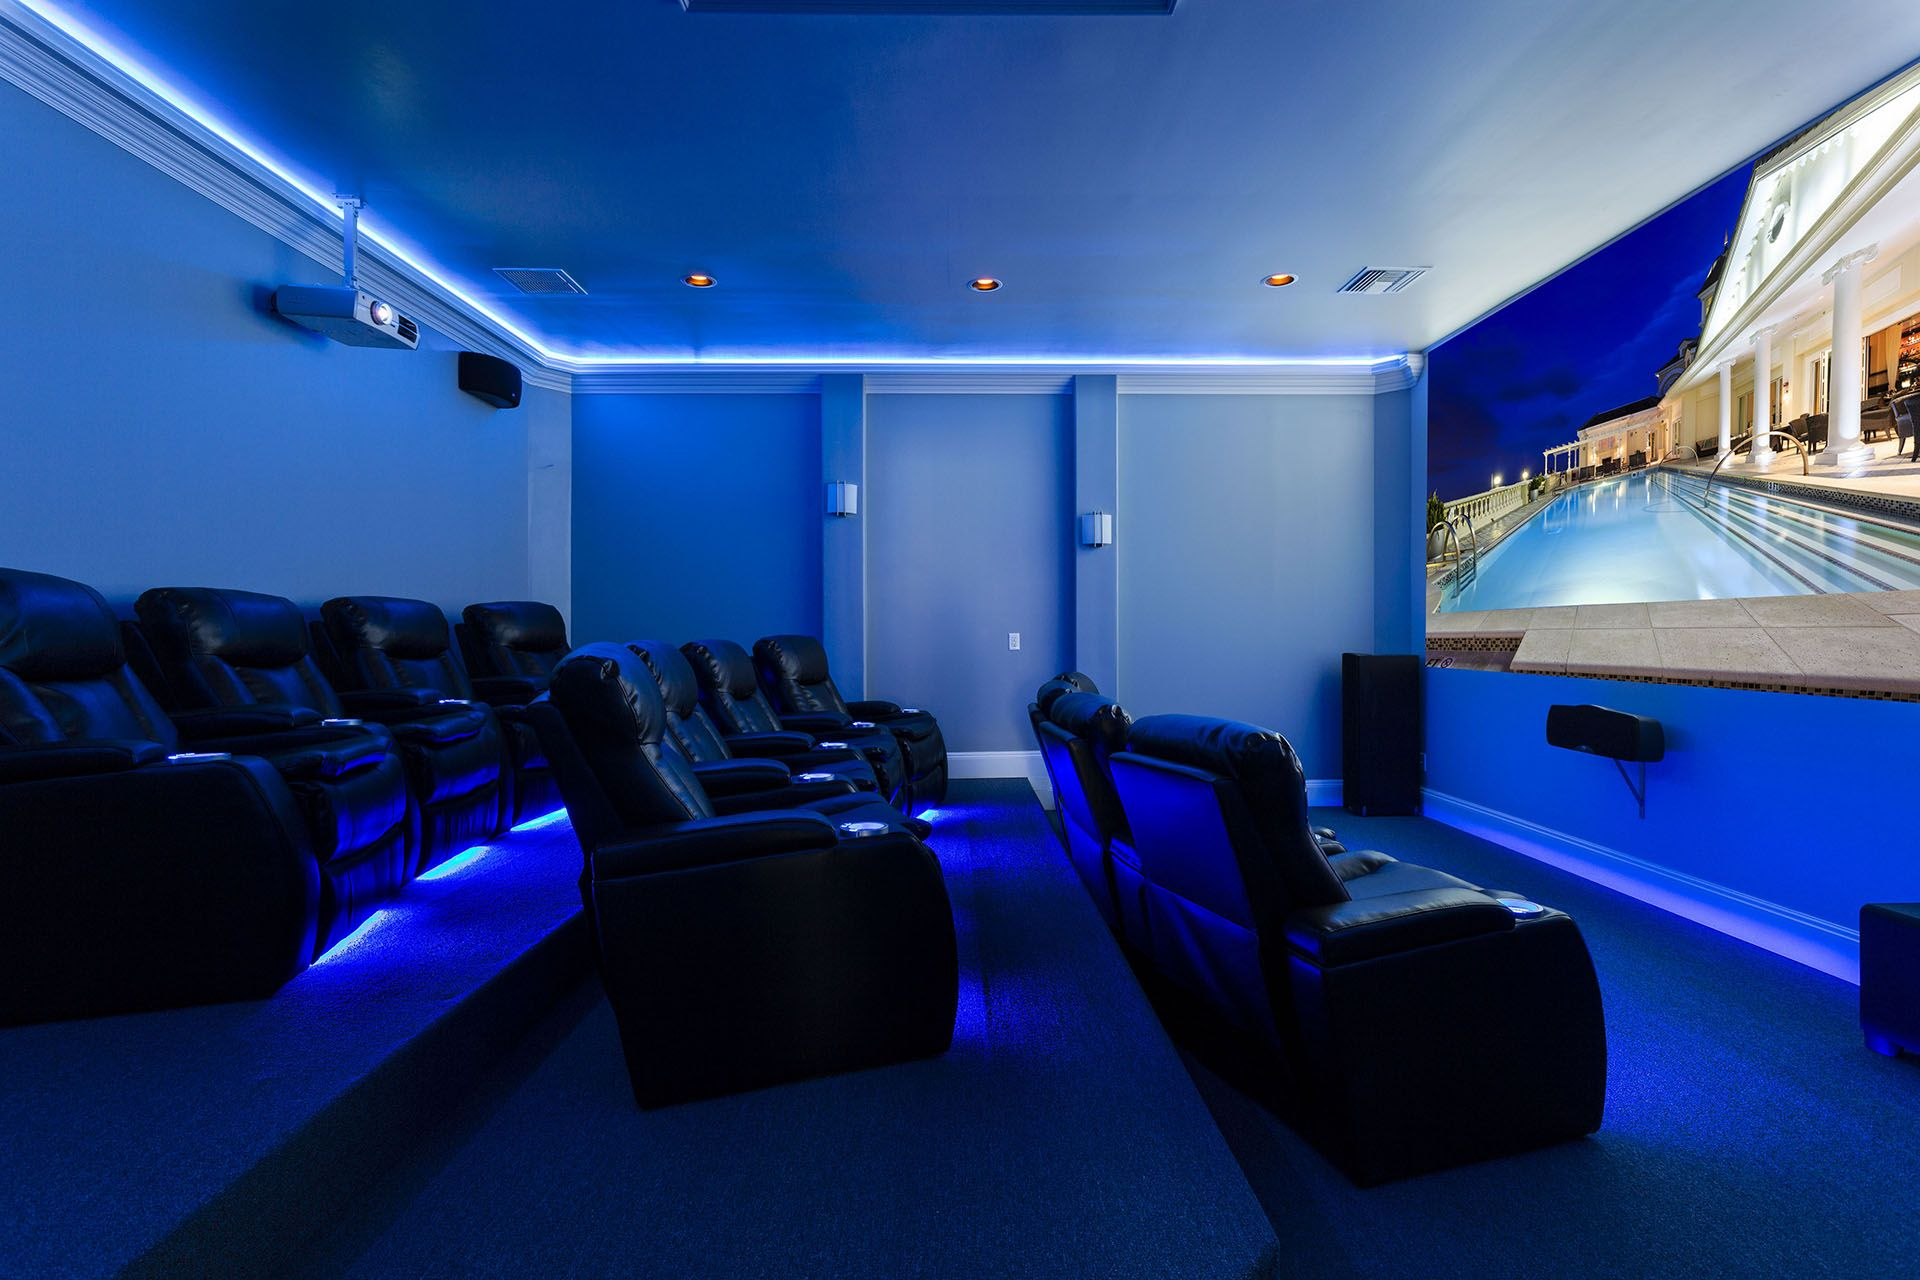 NEW Huge airconditioned 800 Sq Ft Private home cinema